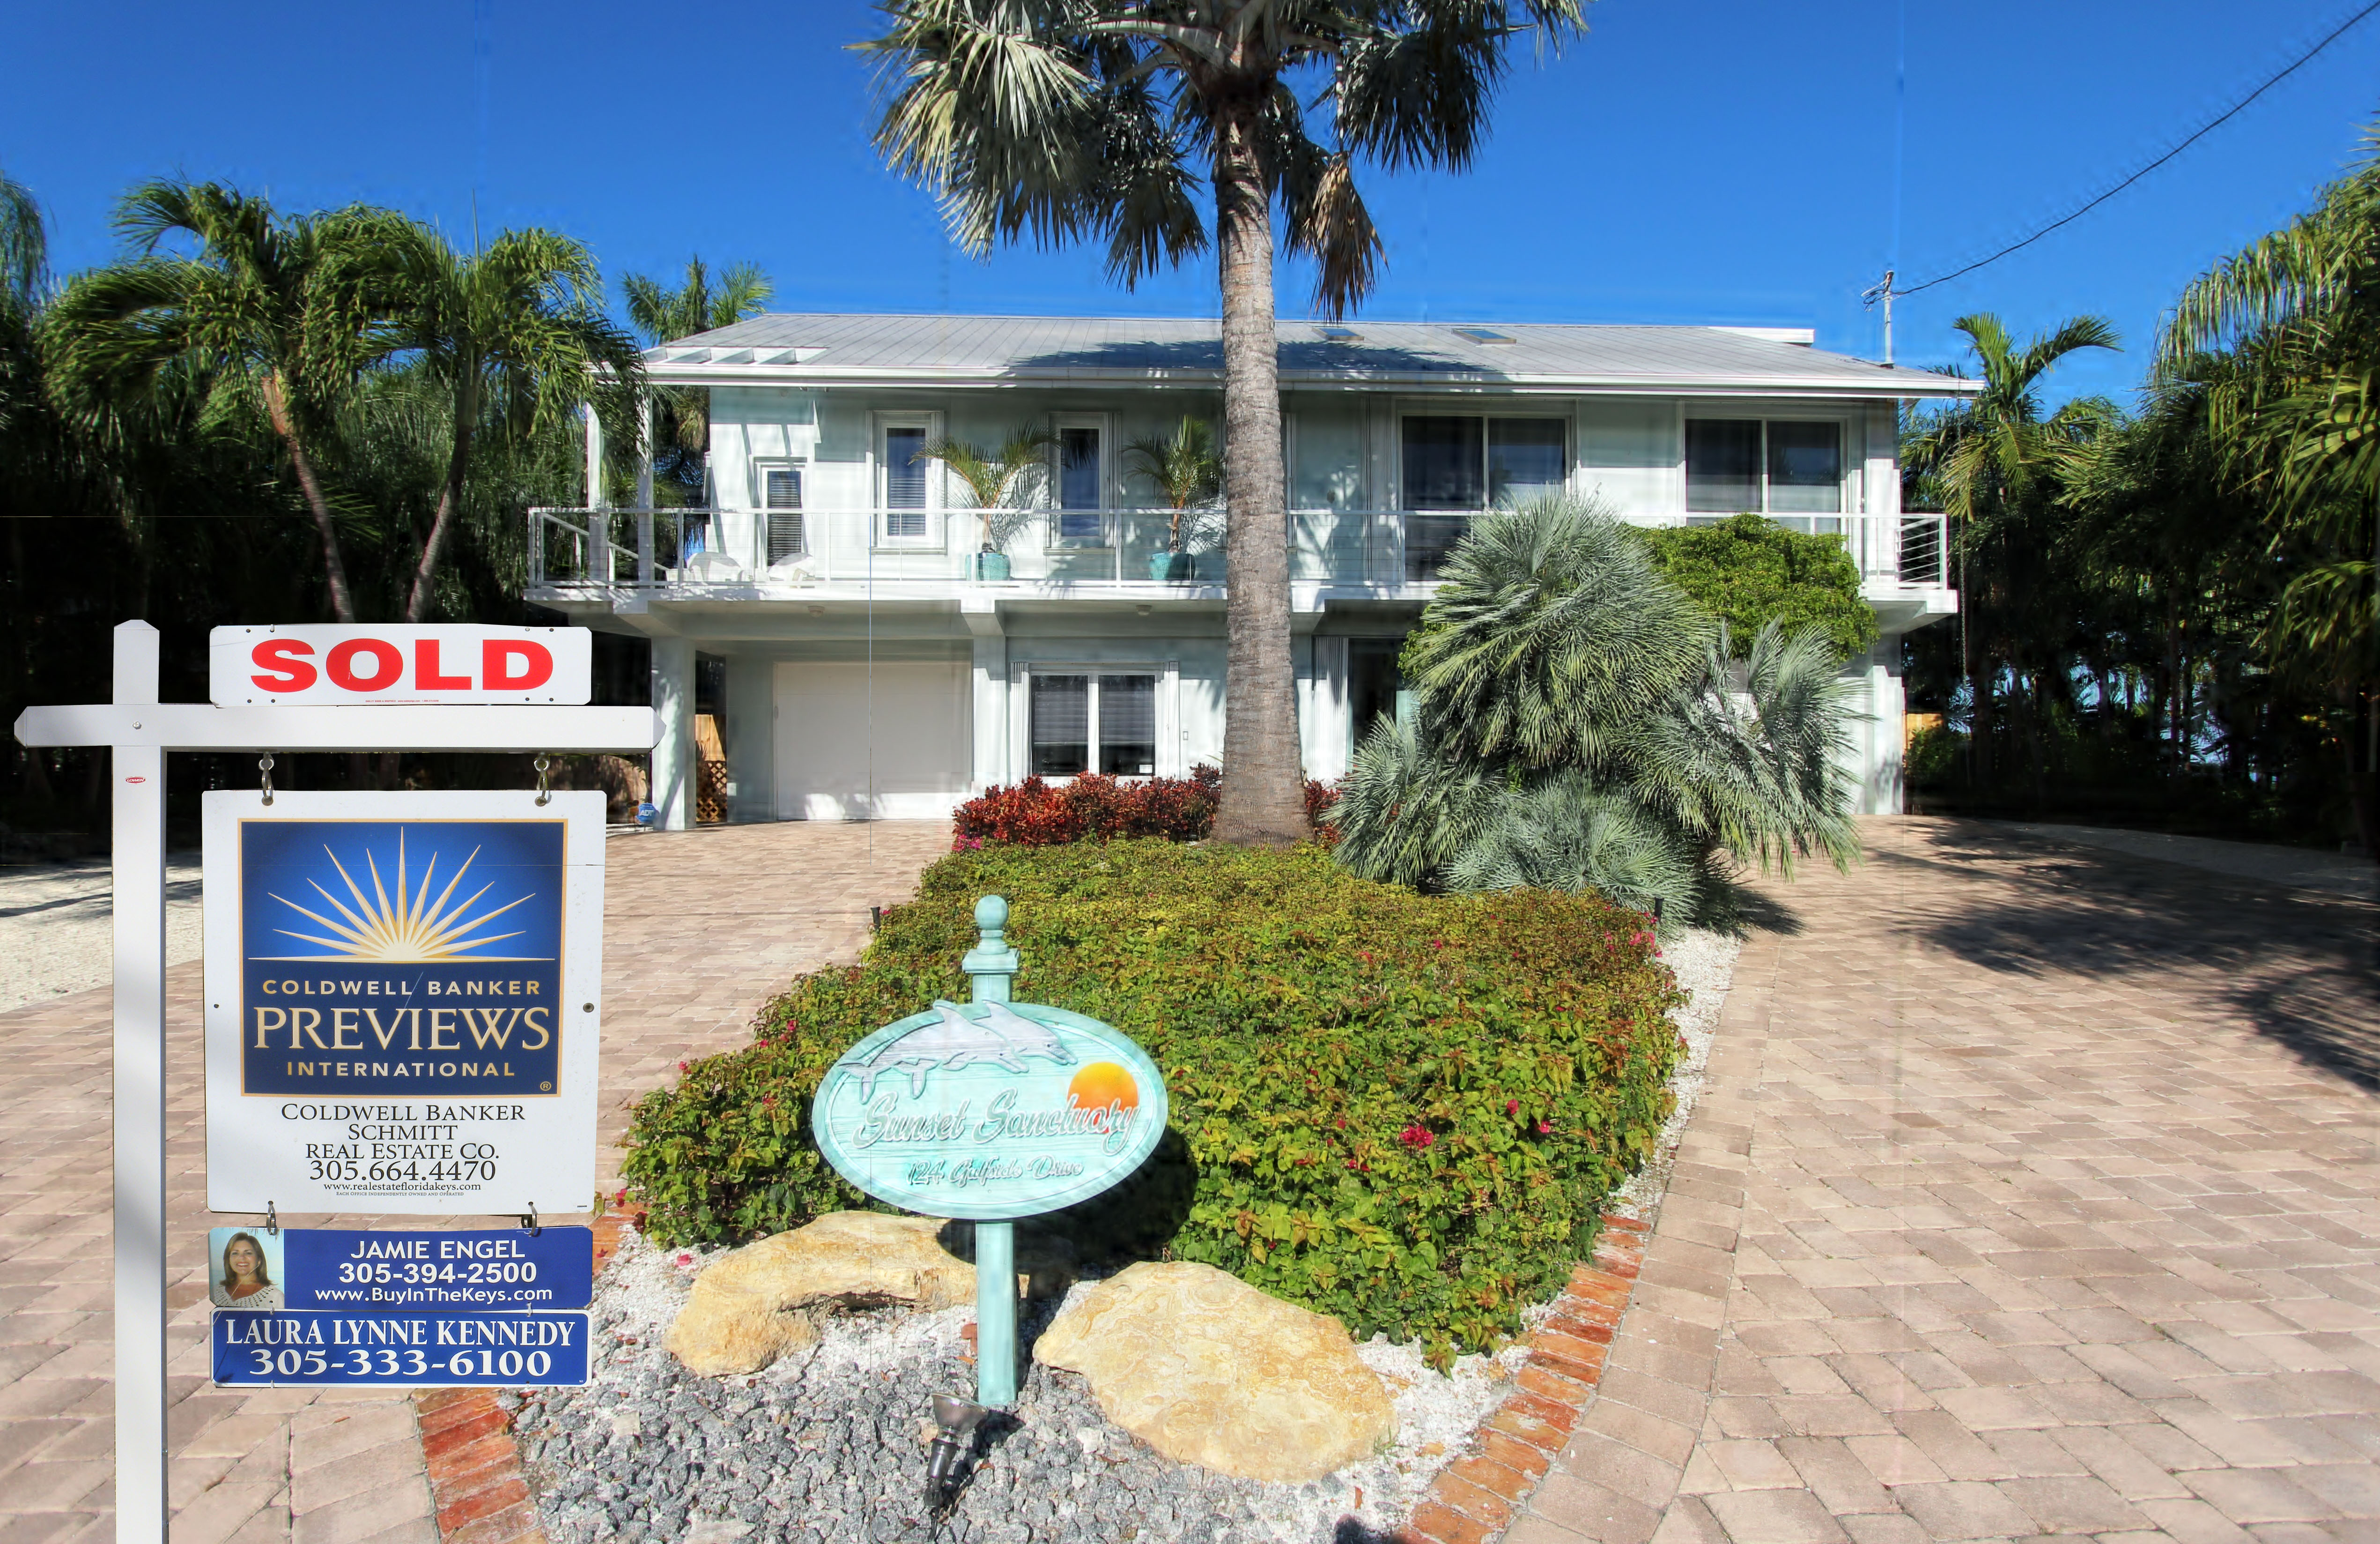 House Sold Keys - Viewing Gallery